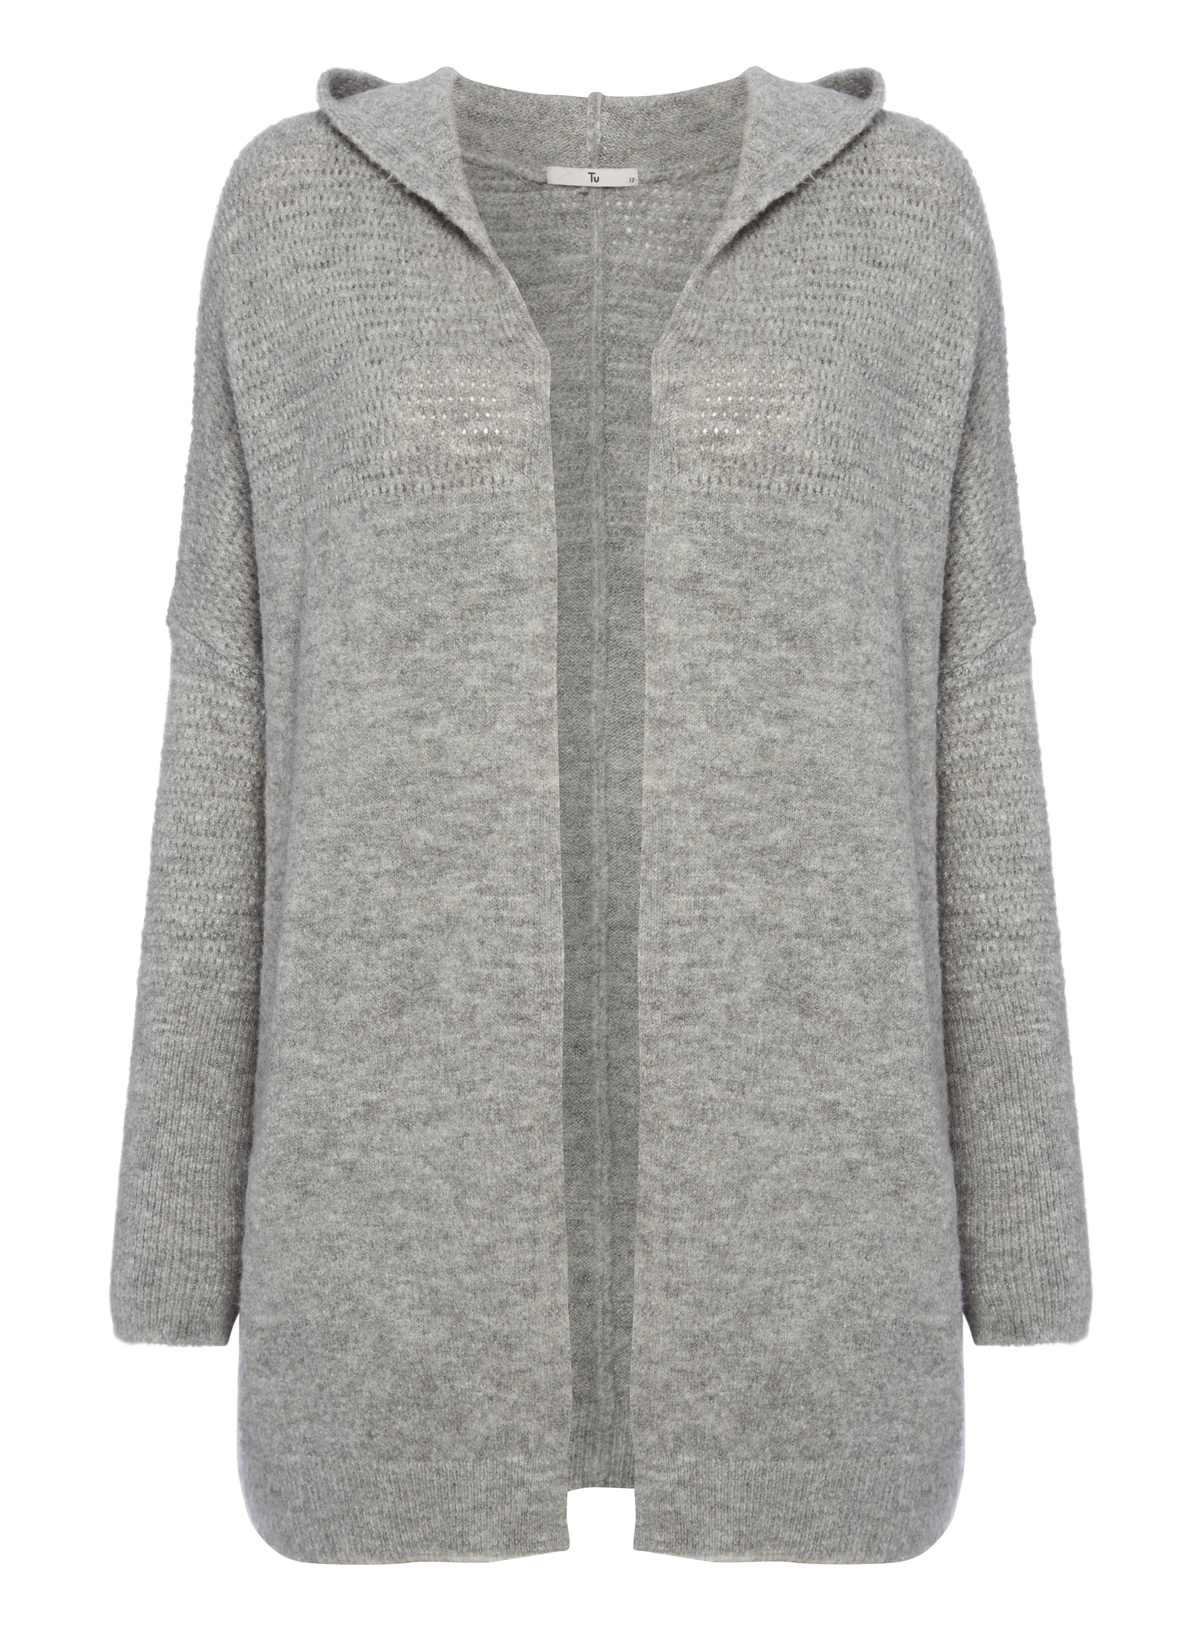 Womens Grey Felted Hooded Cardigan | Tu clothing